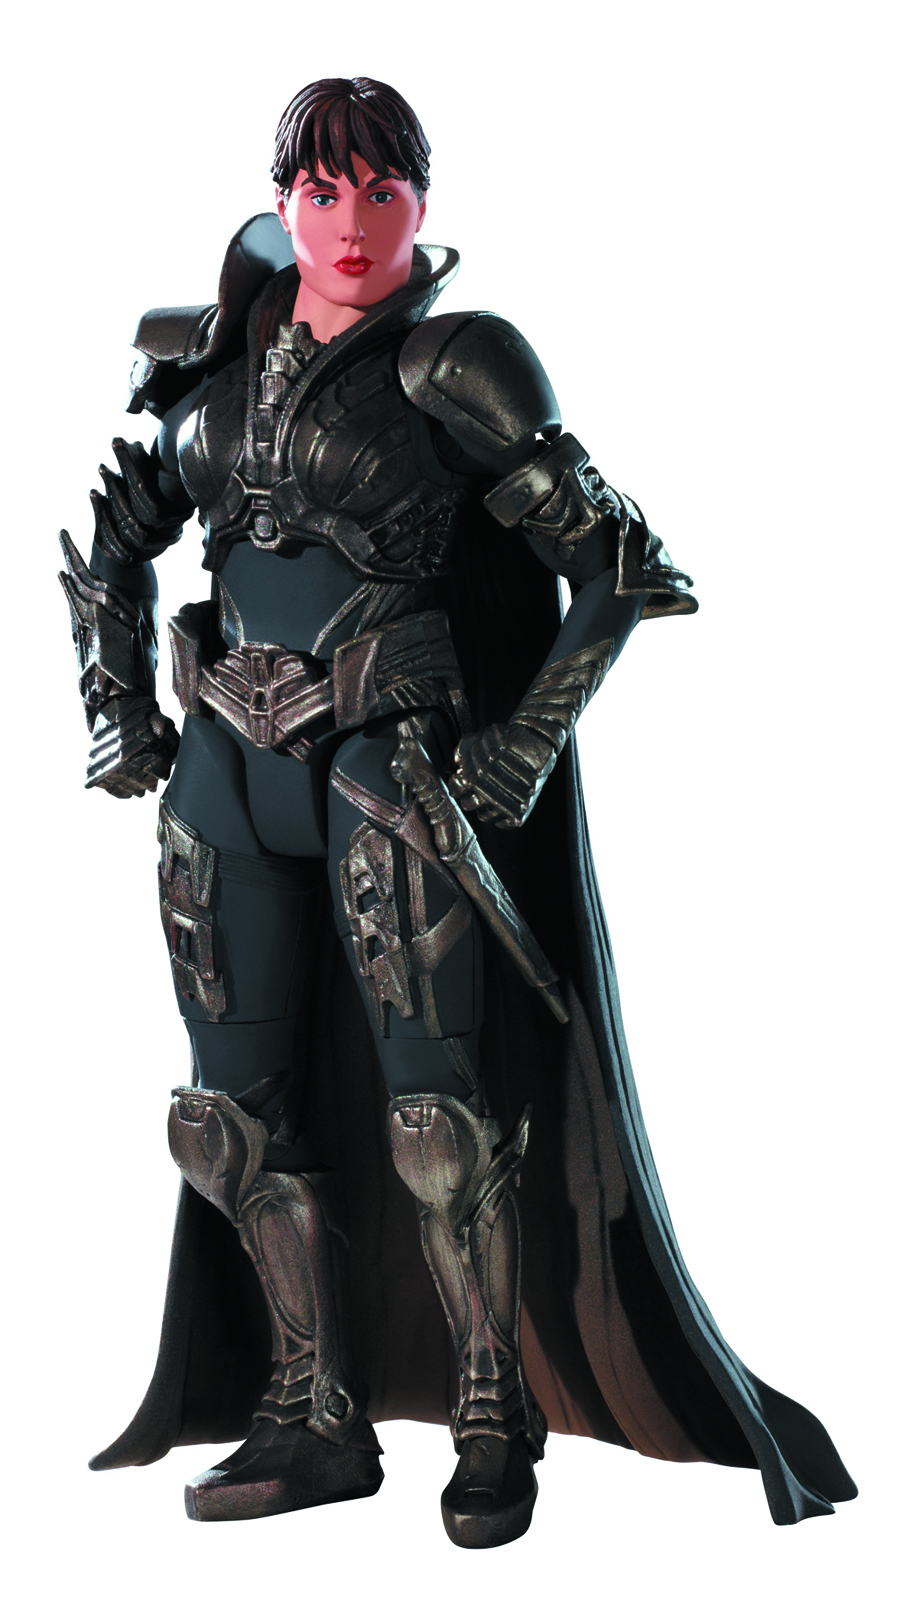 SUPERMAN MOS 6IN MOVIE MASTER FAORA AF